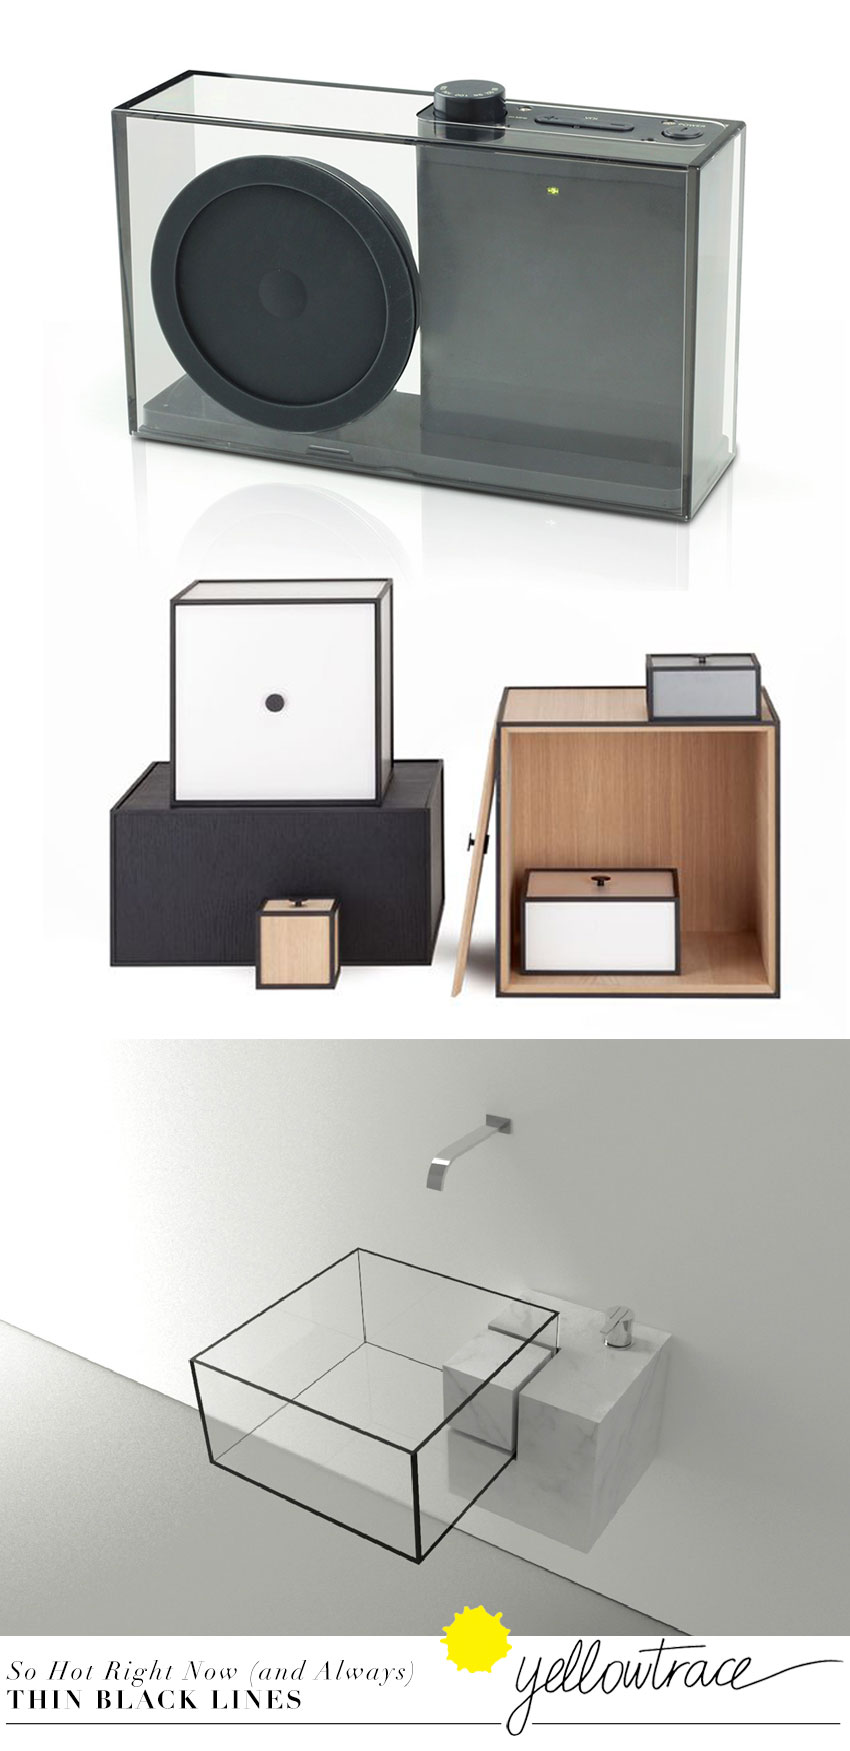 What do a Storage Unit, a Basin and a Transistor Radio Have in Common? by Yellowtrace